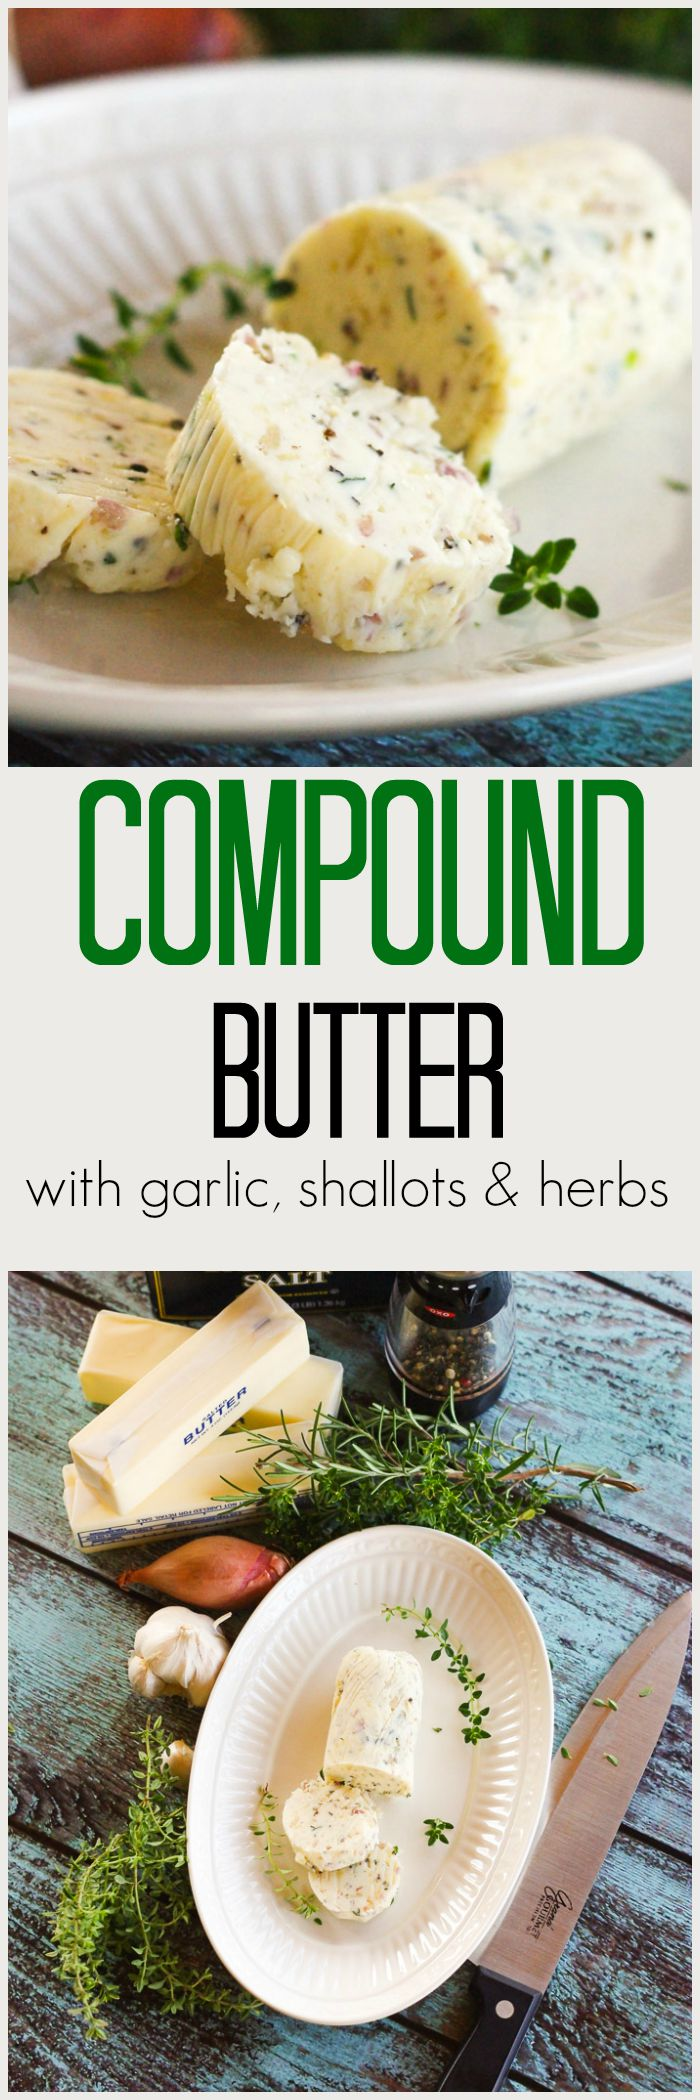 Compound Butter with Garlic, Shallots & Herbs | Home & Plate | www.homeandplate.com | The perfect topper for steaks, chicken and fish. Makes a thoughtful homemade holiday gift for the foodie in your life.